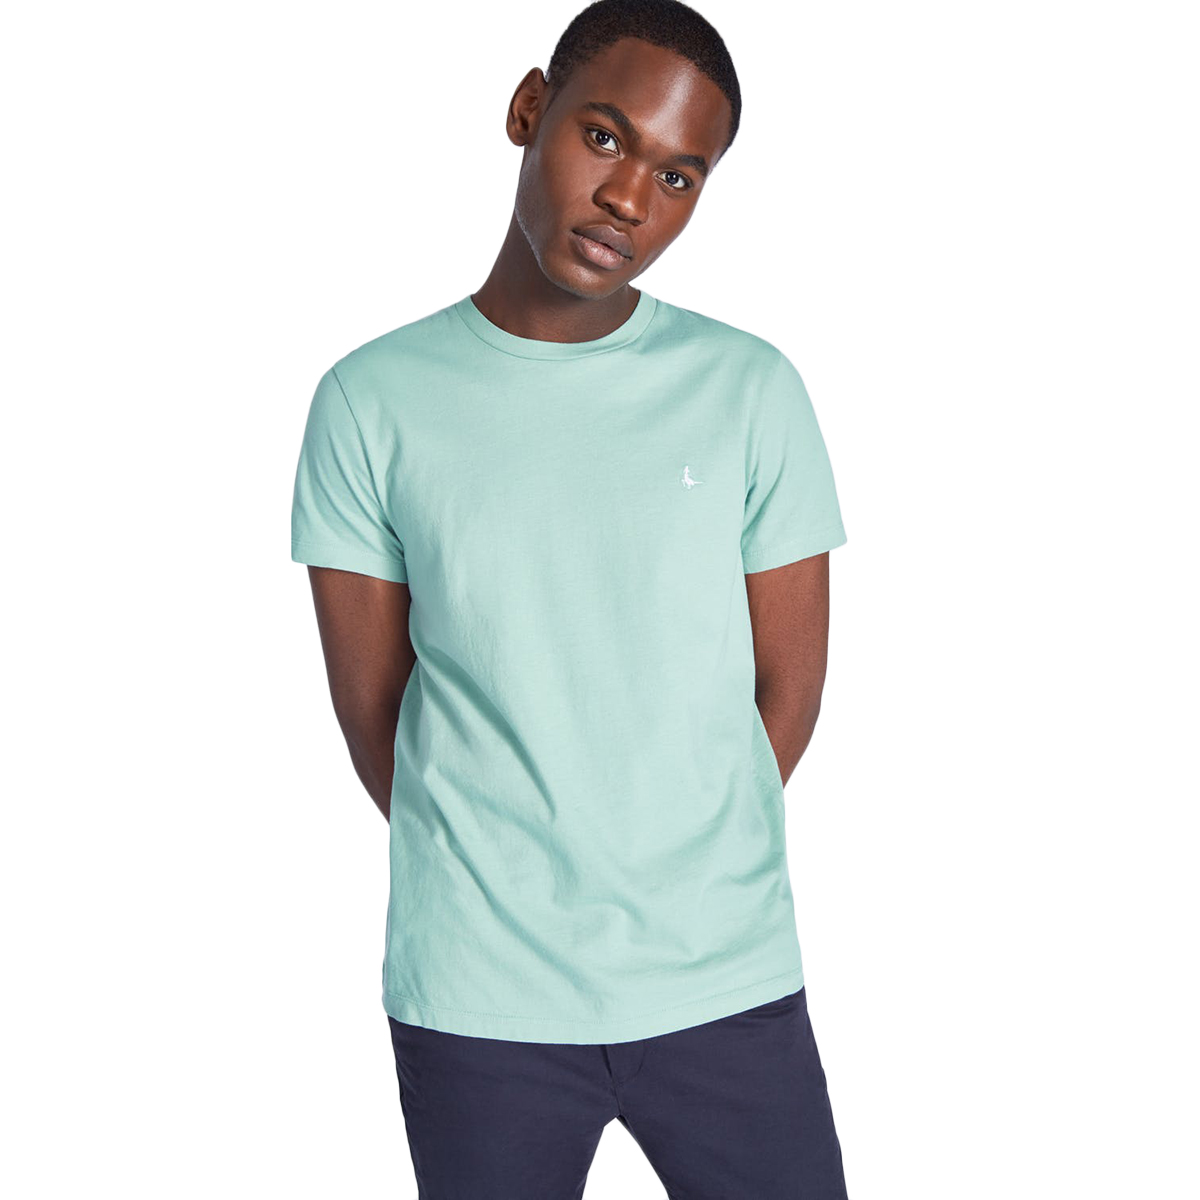 Jack Wills Men's Sandleford Short-Sleeve Tee - Green, M